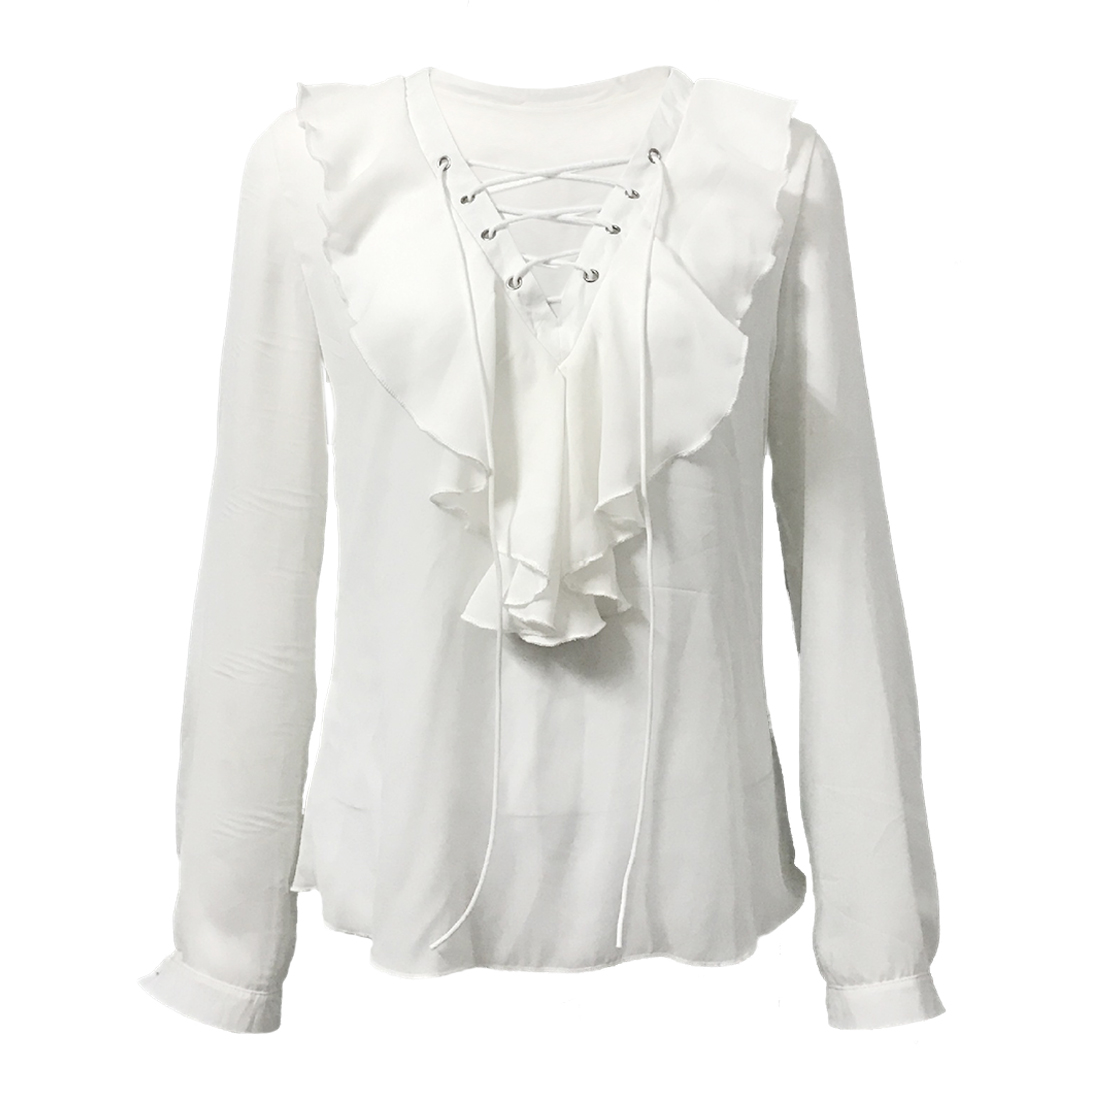 White Blouses Uk Promotion-Shop for Promotional White Blouses Uk ...